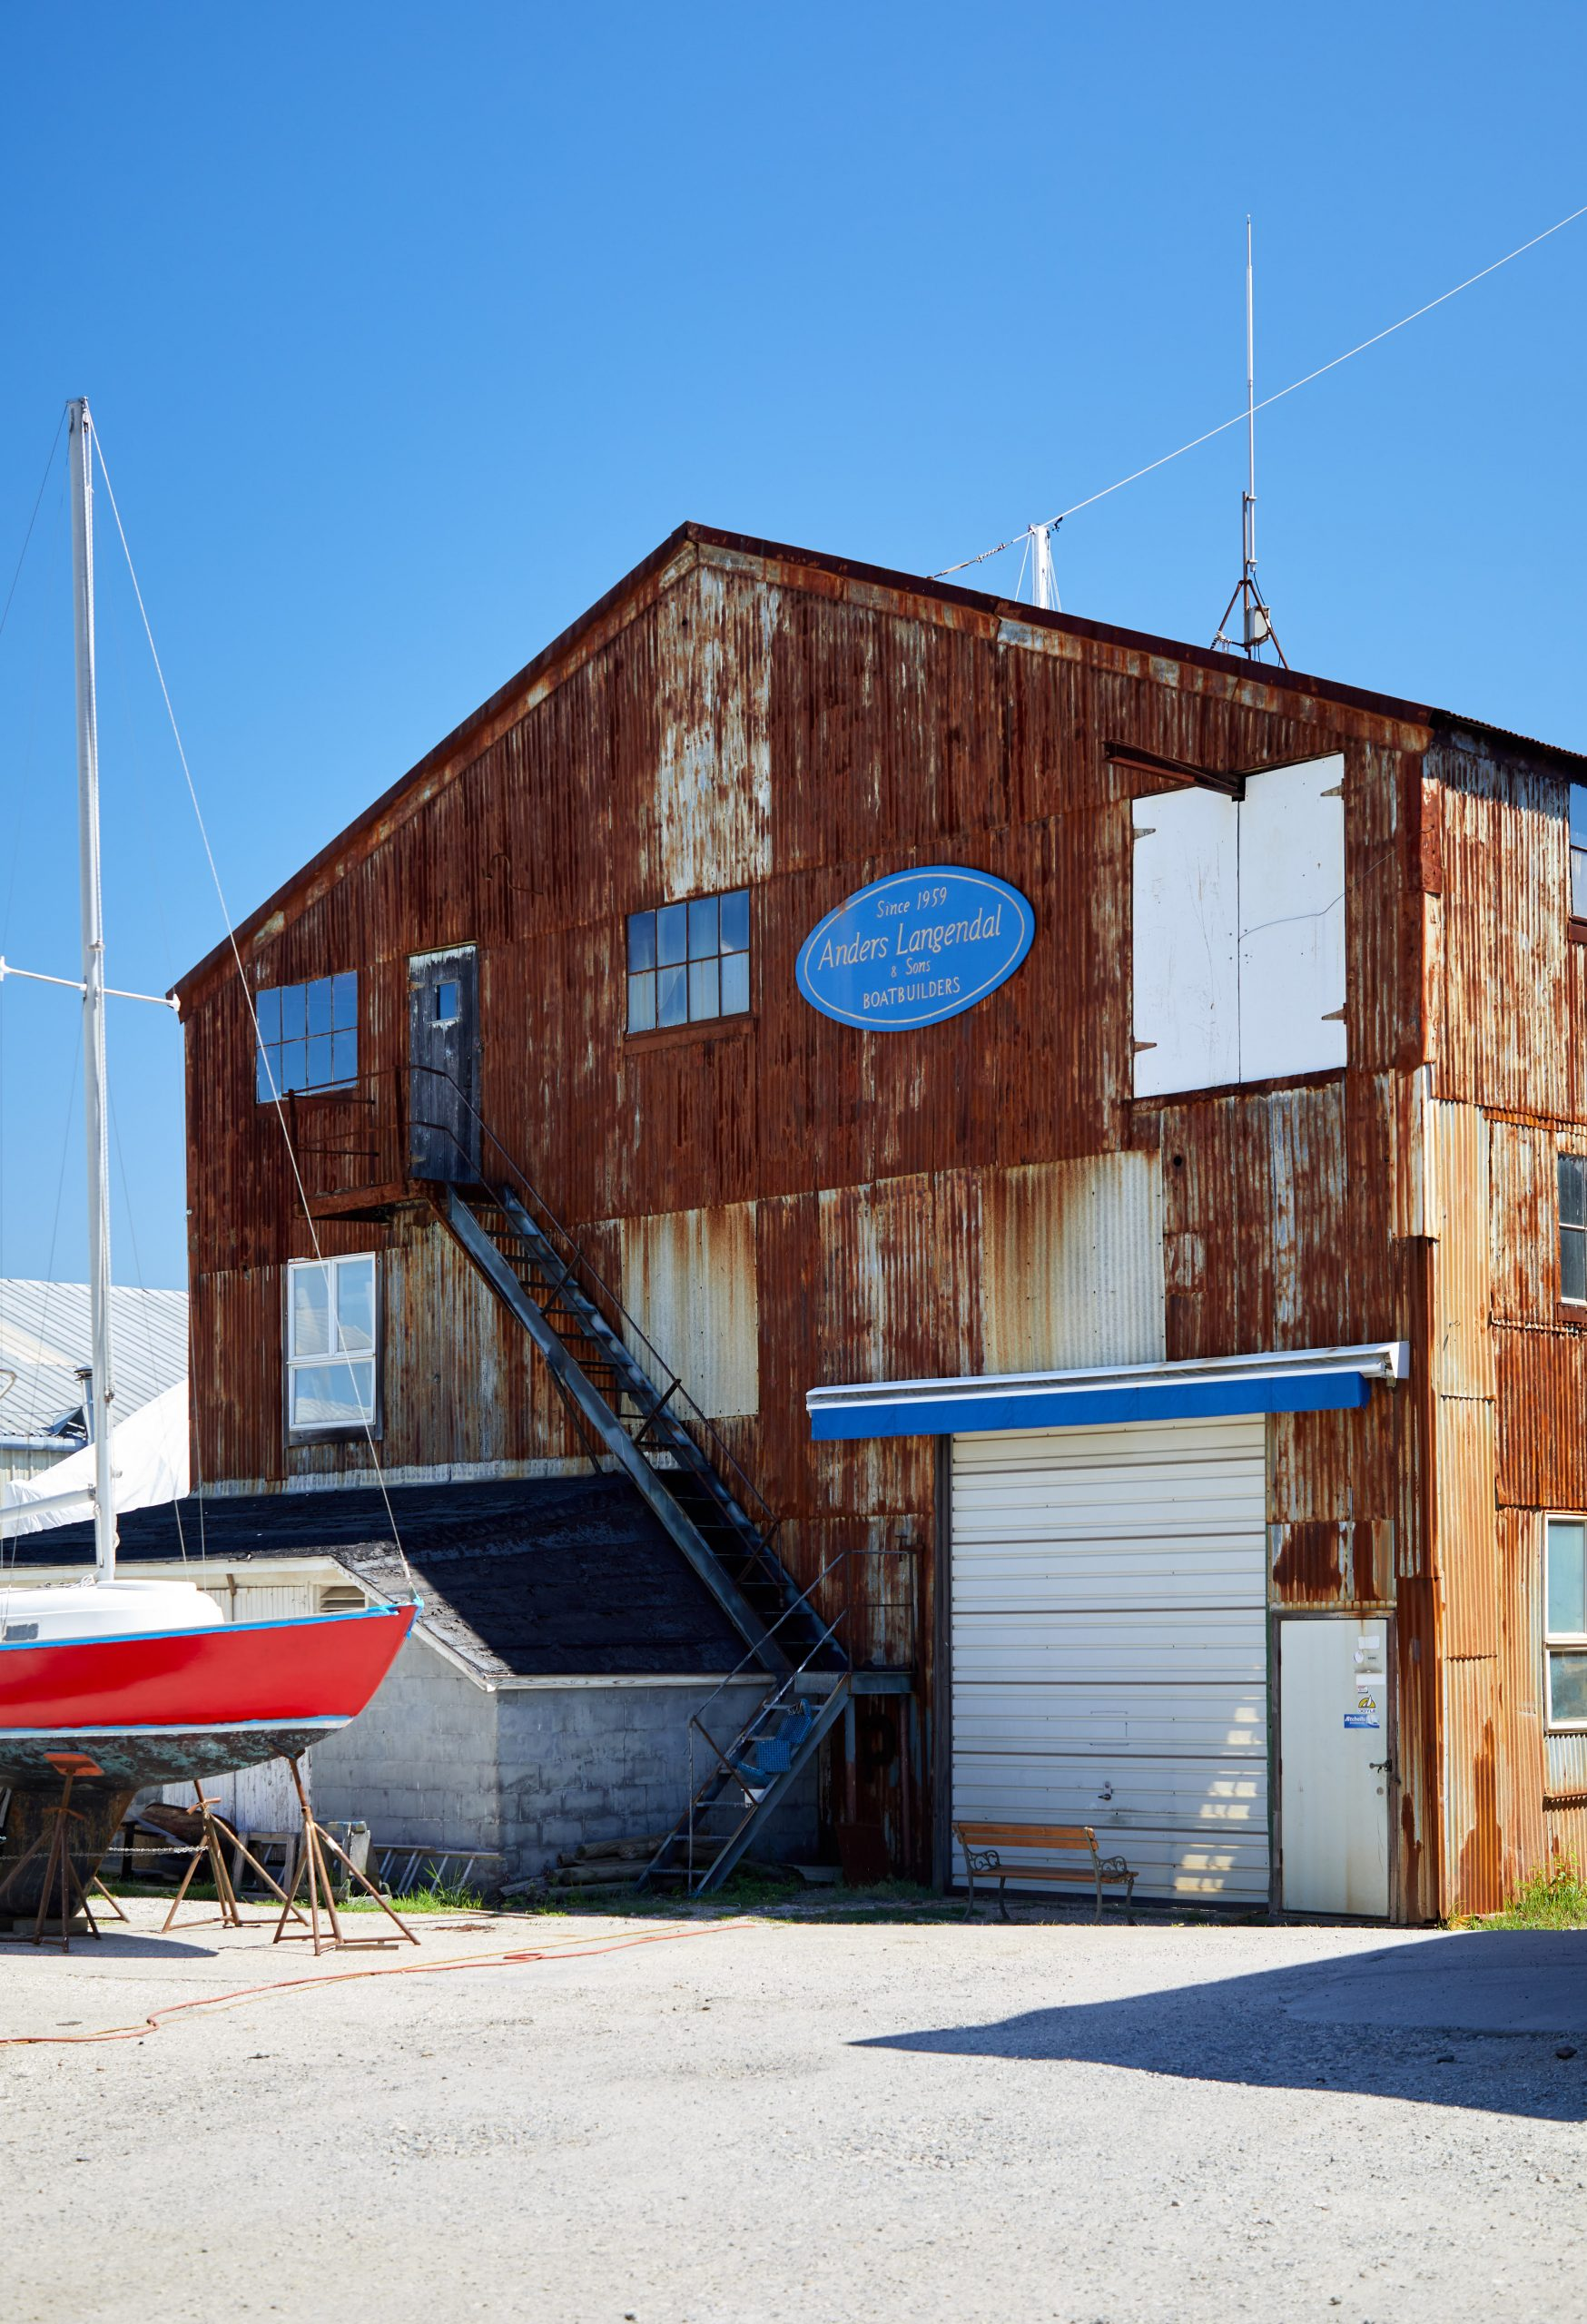 Greenpoint rusted shipyard building